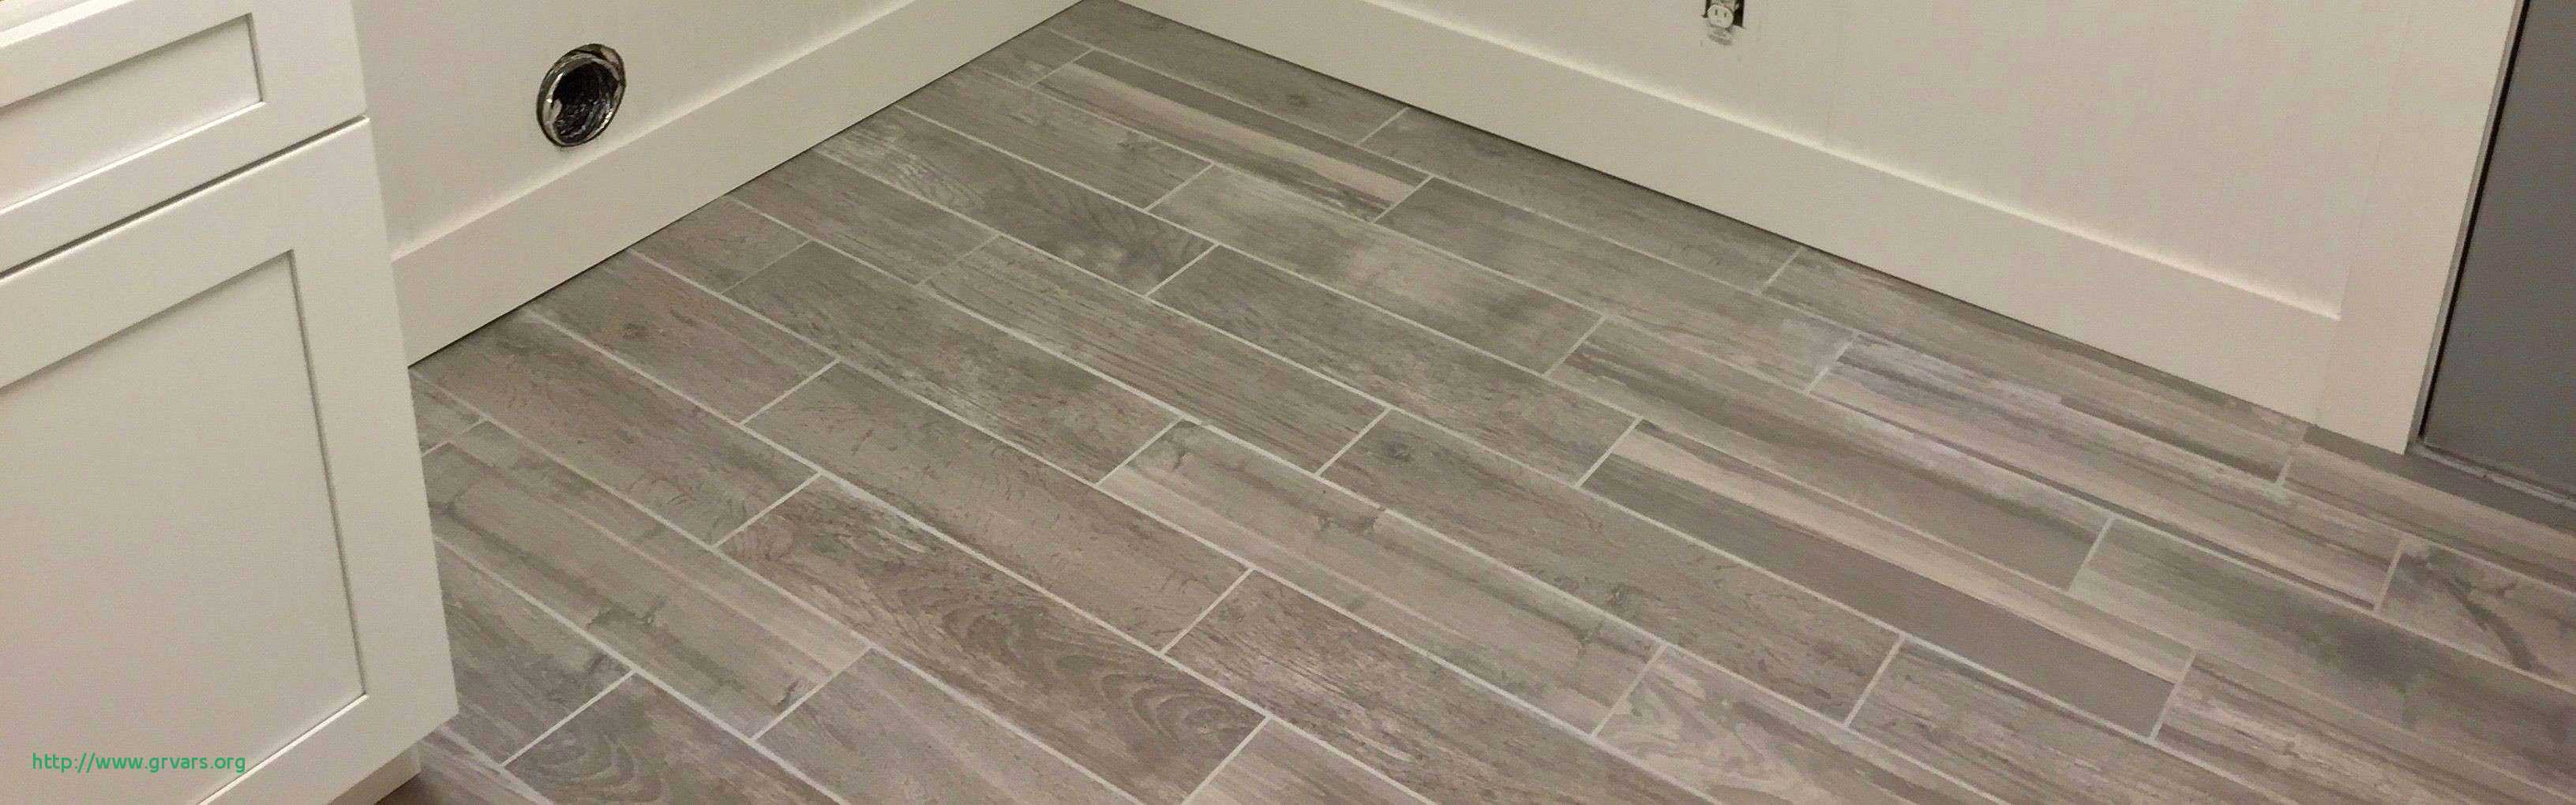 hardwood floor transition to exterior door of 15 nouveau floor transition plates ideas blog with floor transition plates inspirant wood like tile transition from tile to wood floors light to dark